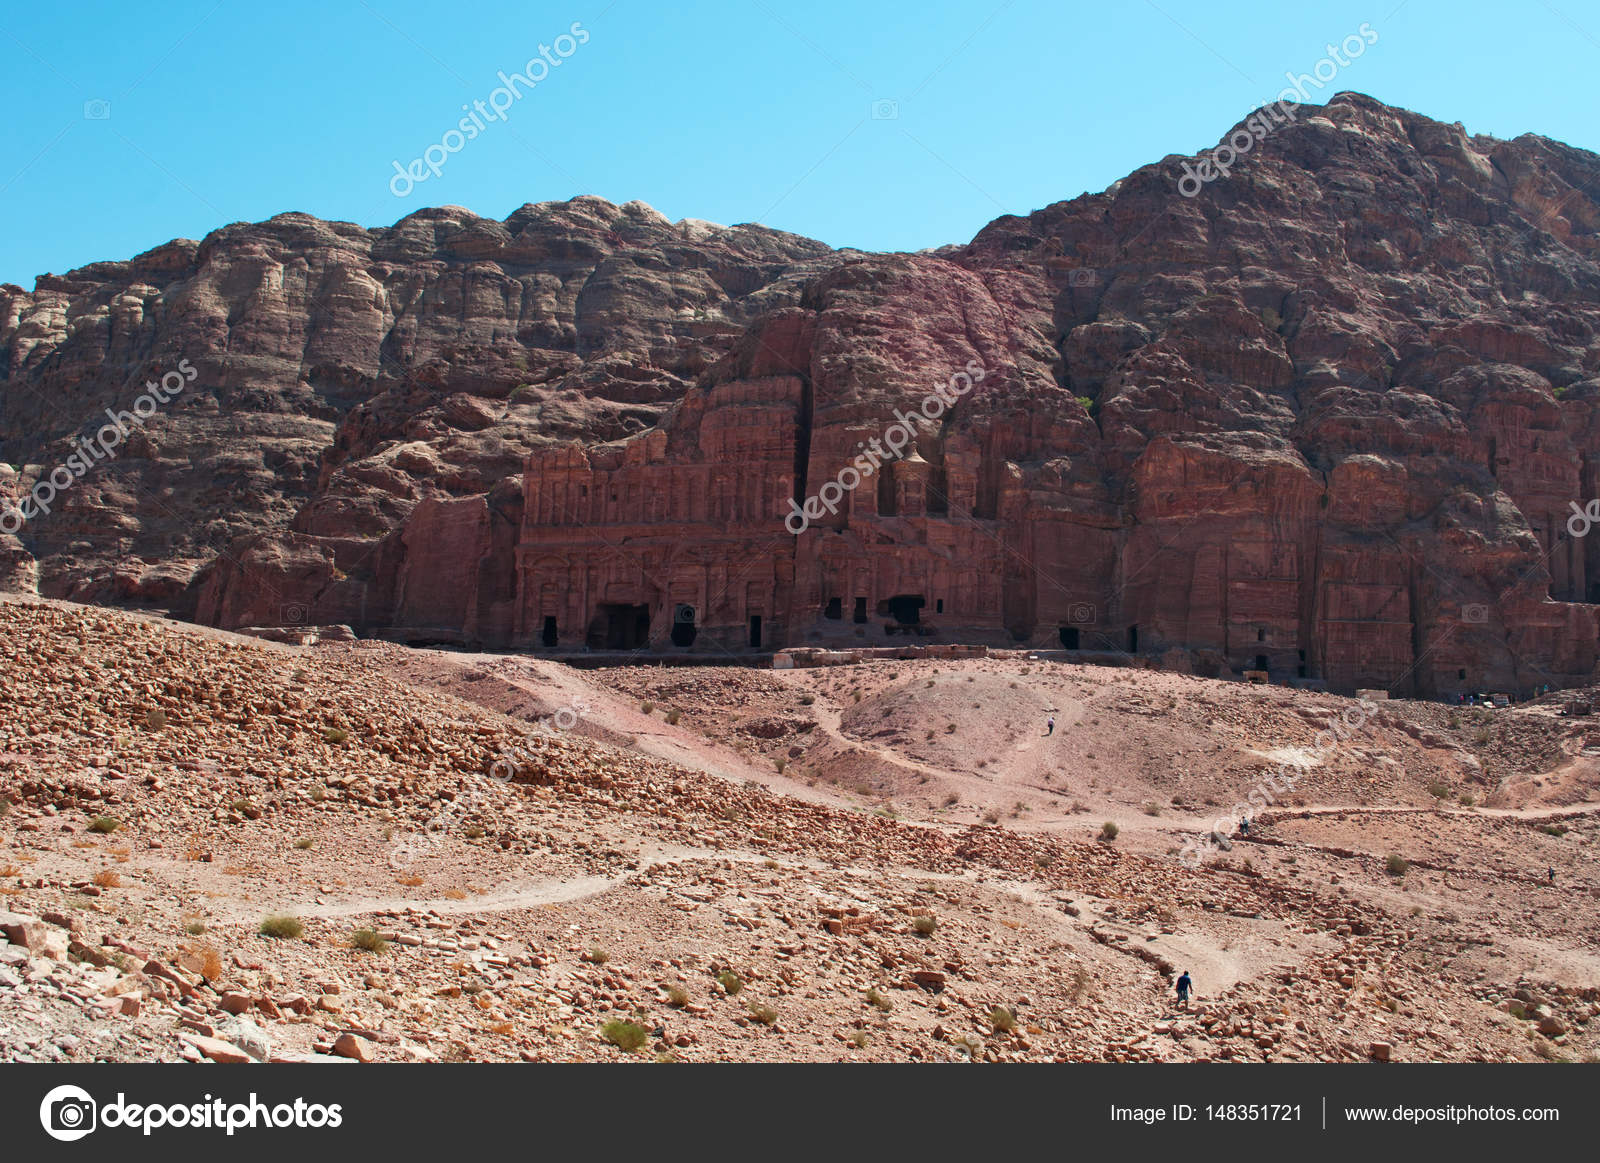 kings mountain middle eastern singles Active hiking and trekking vacations around the world trek in nepal, hike in europe, explore the grand canyon and much more with rei adventures.